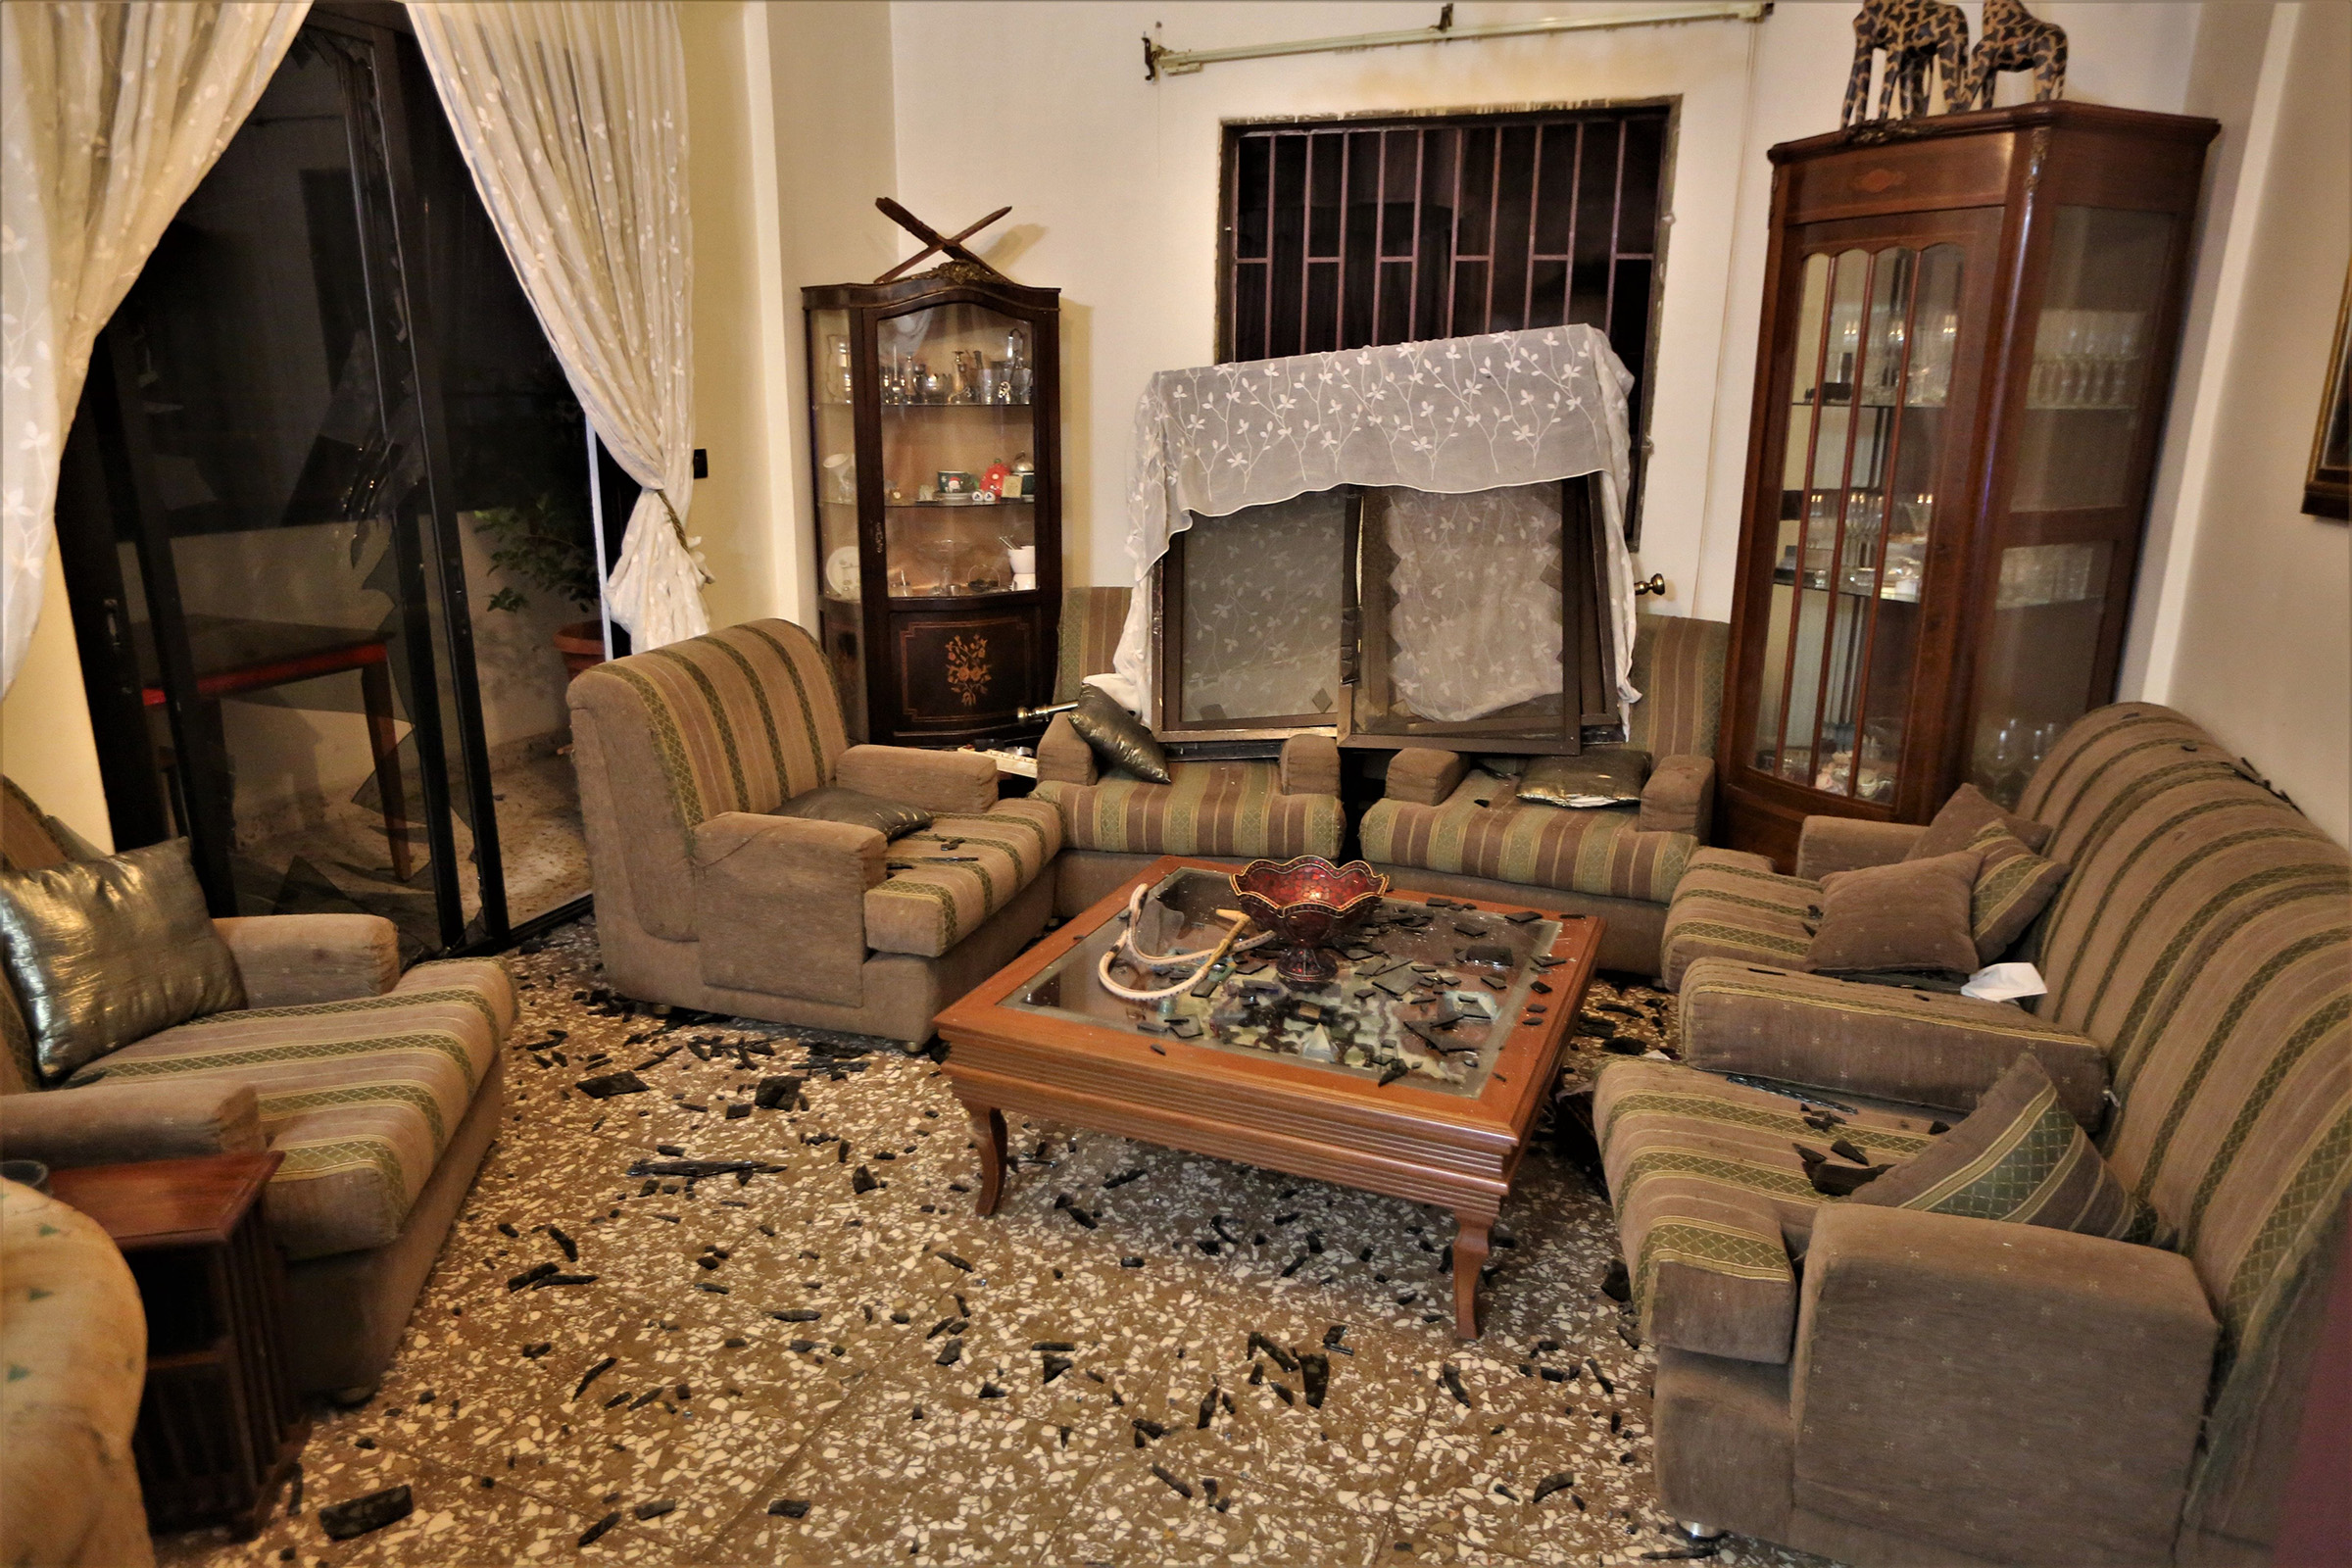 A view of damages at a house in the Burj Abu Haidar area after the explosion.